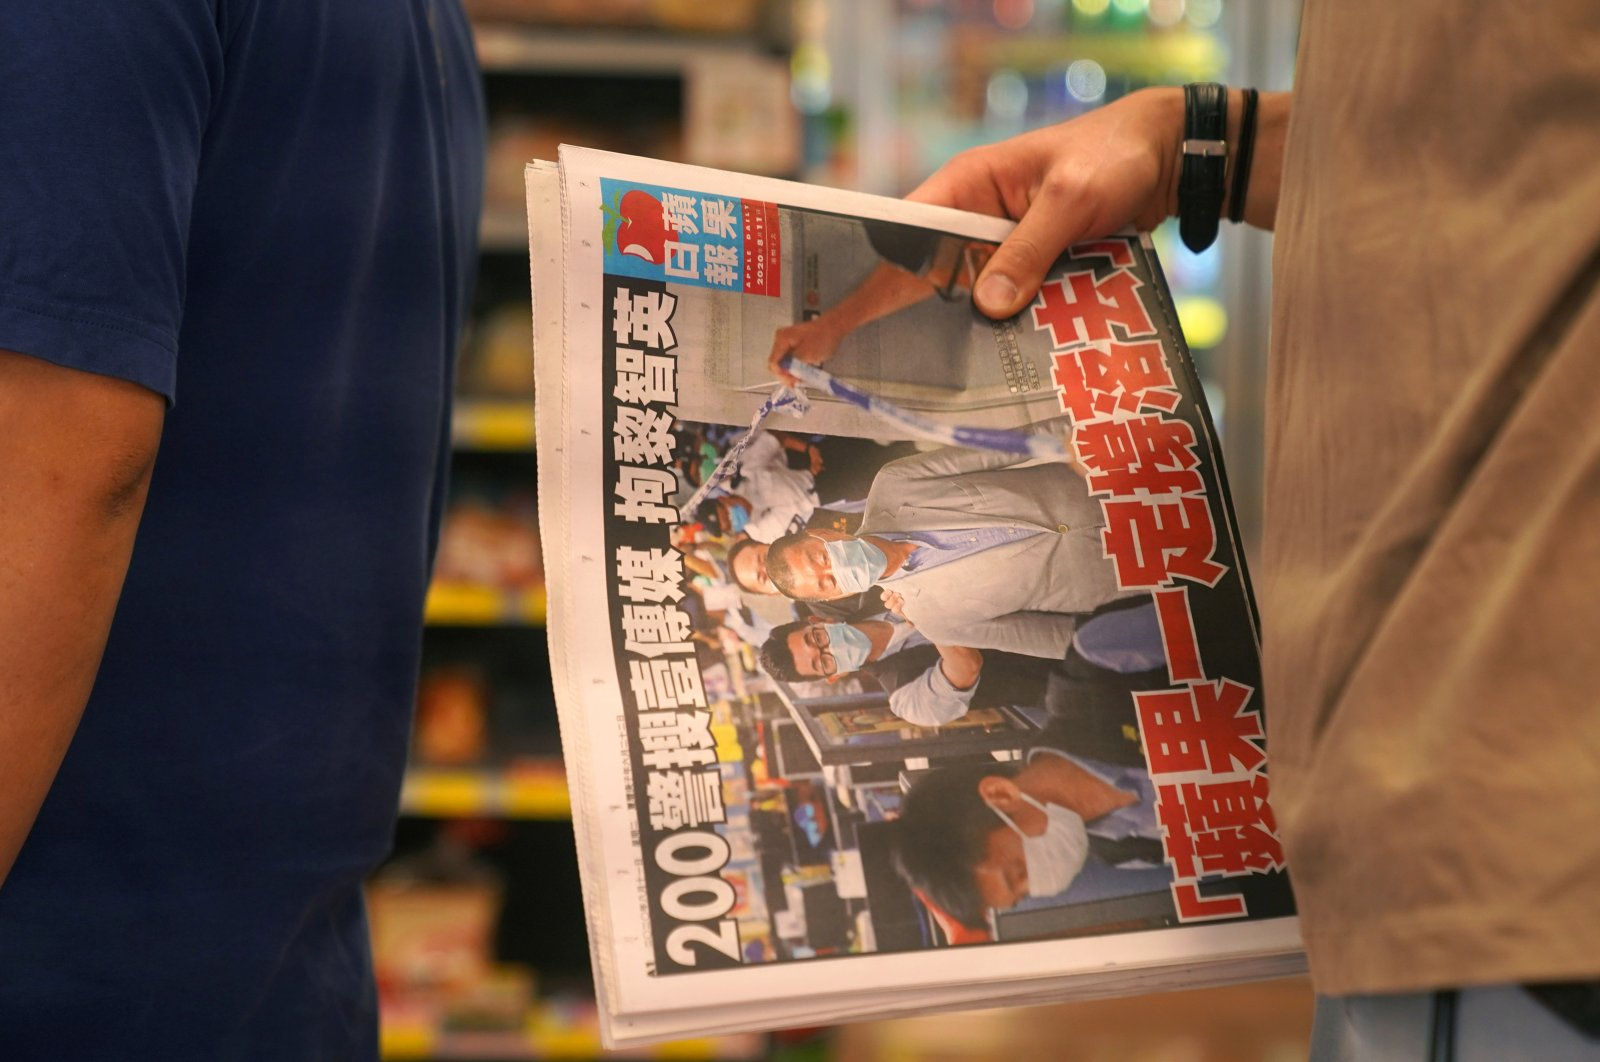 """A man waits to pay for an Apple Daily newspaper with the headline """"Apple Daily will fight on"""" after media mogul and founder Lai Chee-Ying, aka Jimmy Lai, was arrested by the national security unit inside a convenience store in Hong Kong, China, Aug. 11, 2020. (Reuters Photo)"""